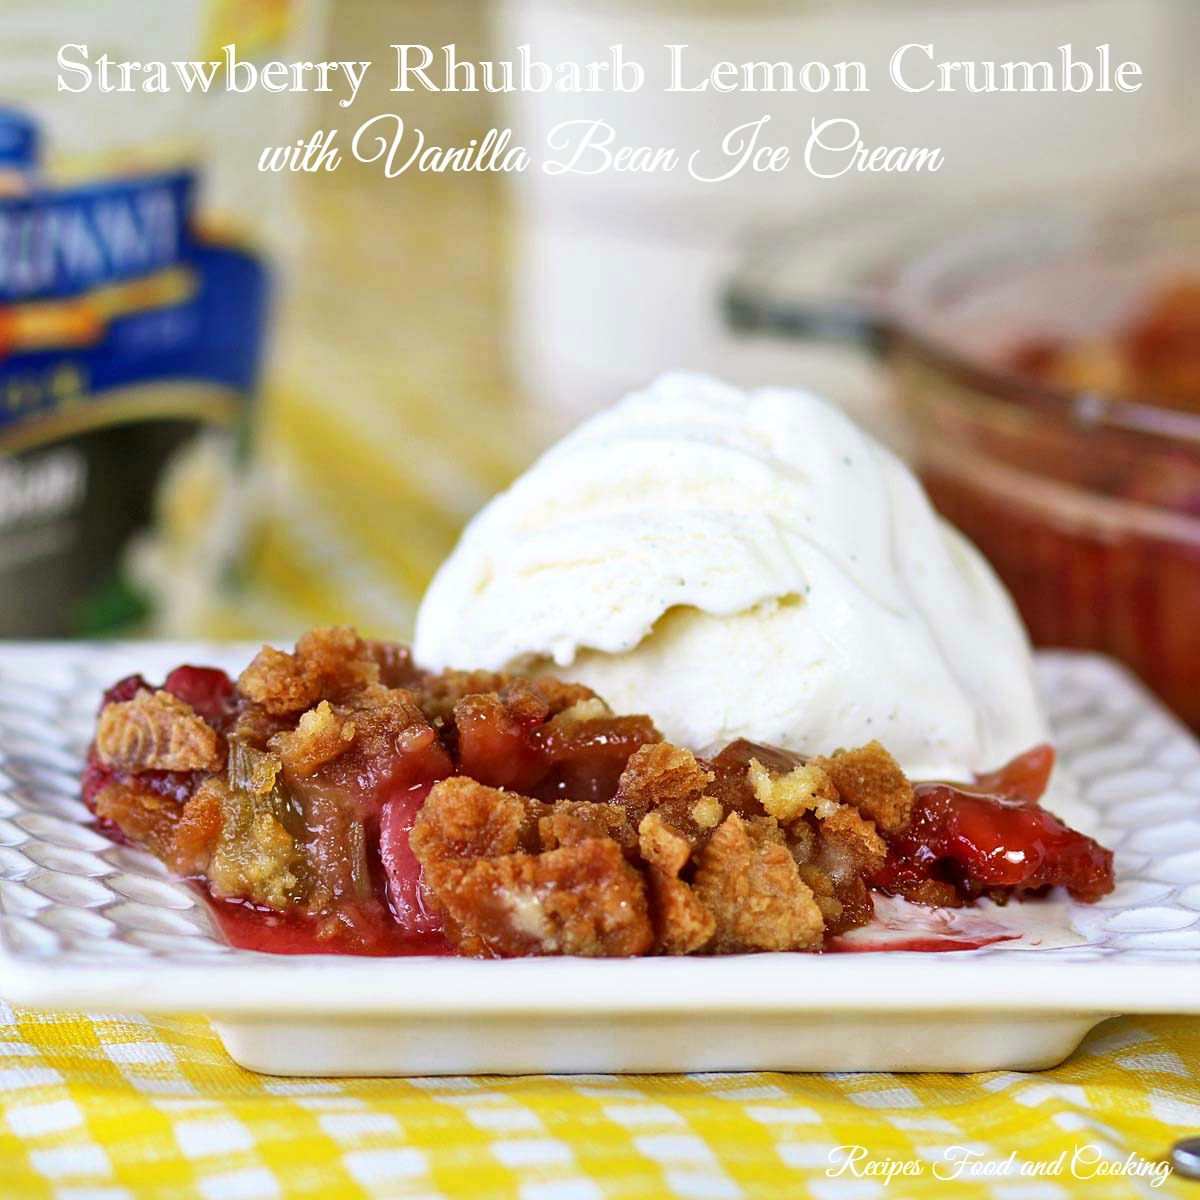 Strawberry Rhubarb Lemon Crumble